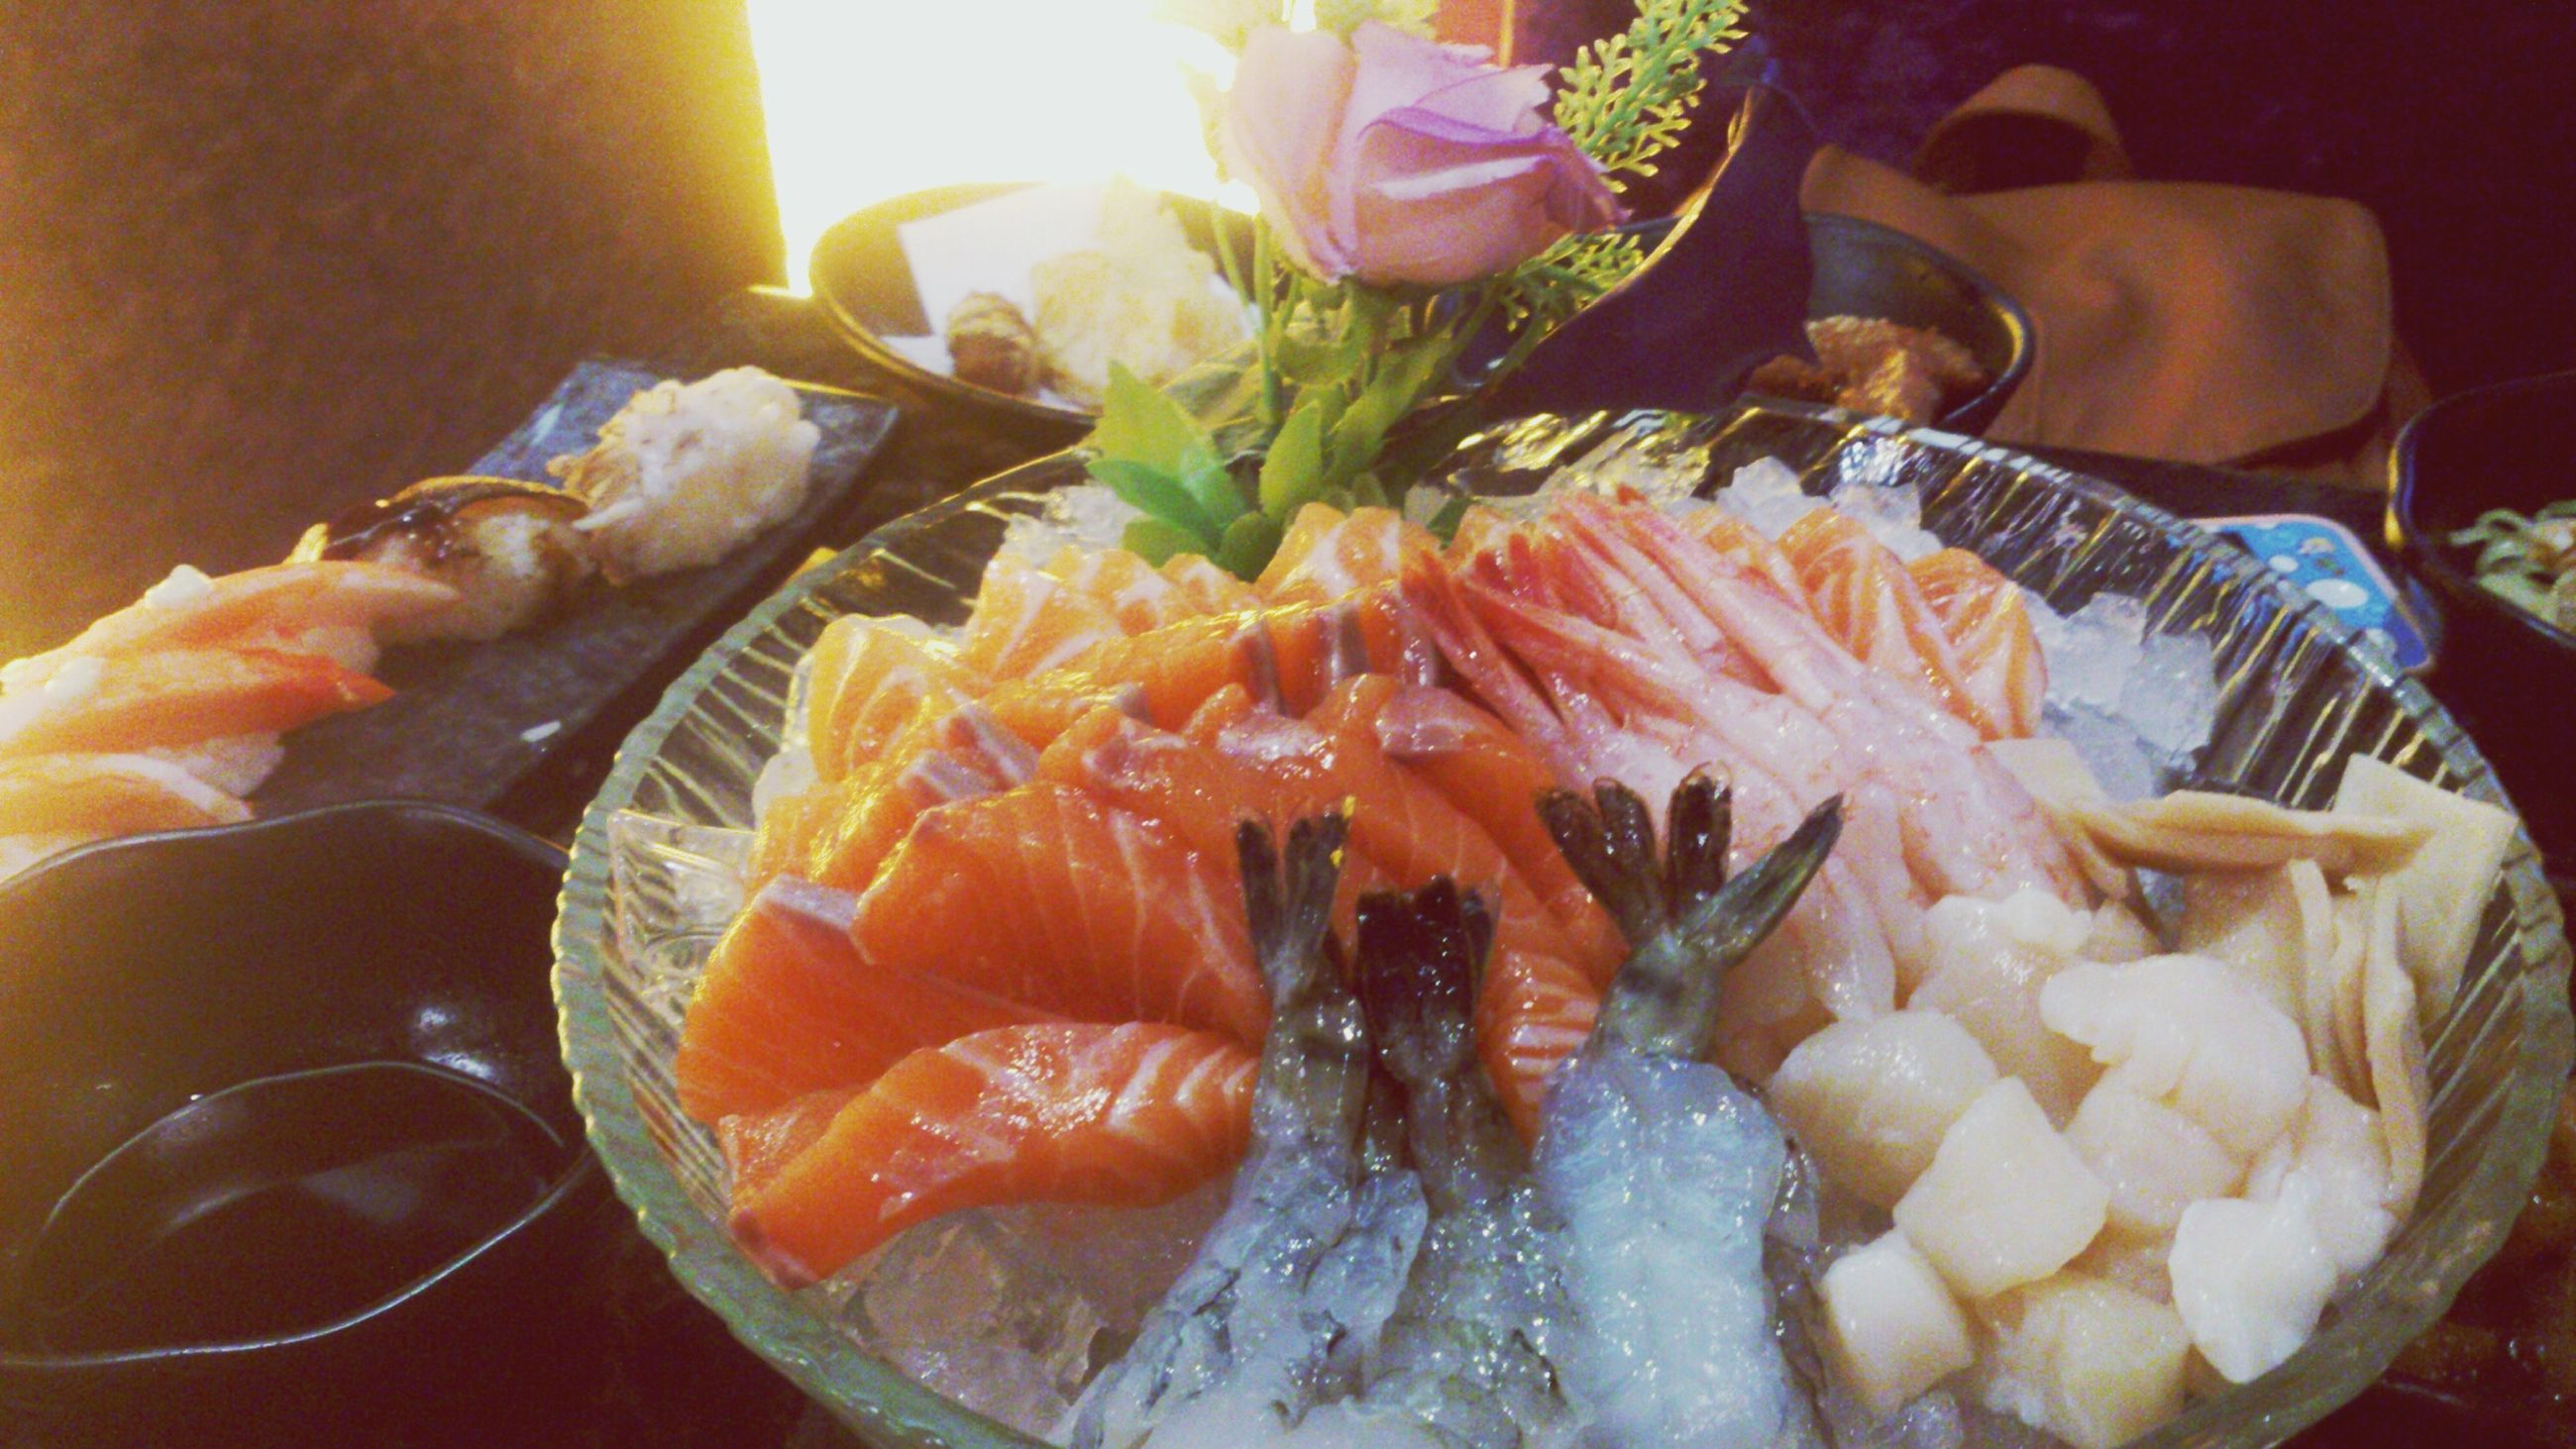 food and drink, food, indoors, freshness, healthy eating, ready-to-eat, plate, still life, seafood, close-up, table, high angle view, serving size, indulgence, meal, fish, meat, vegetable, no people, bowl